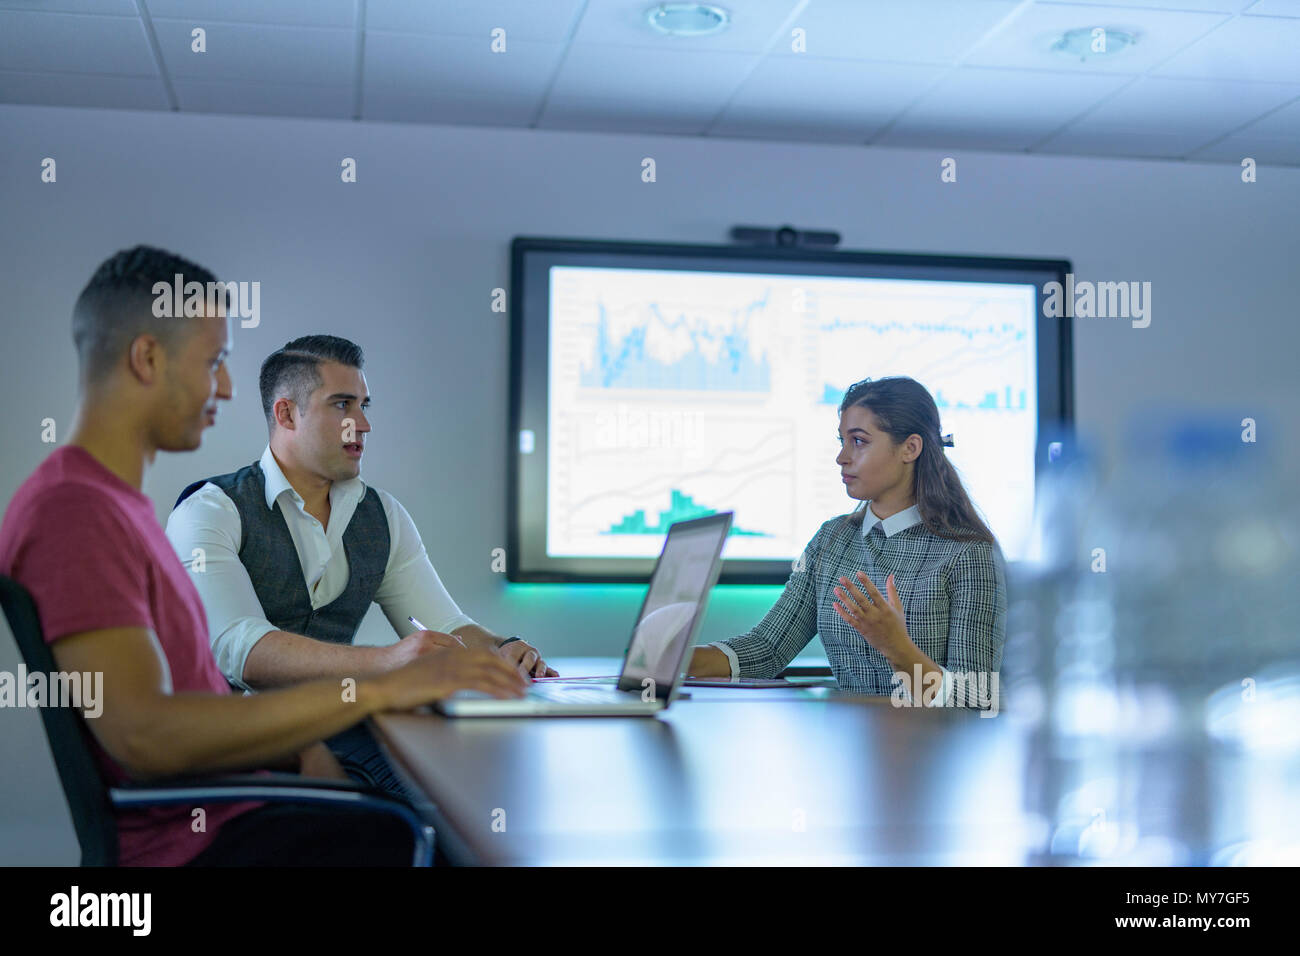 Business team using laptop and interactive screens with charts and graphs in business meeting - Stock Image